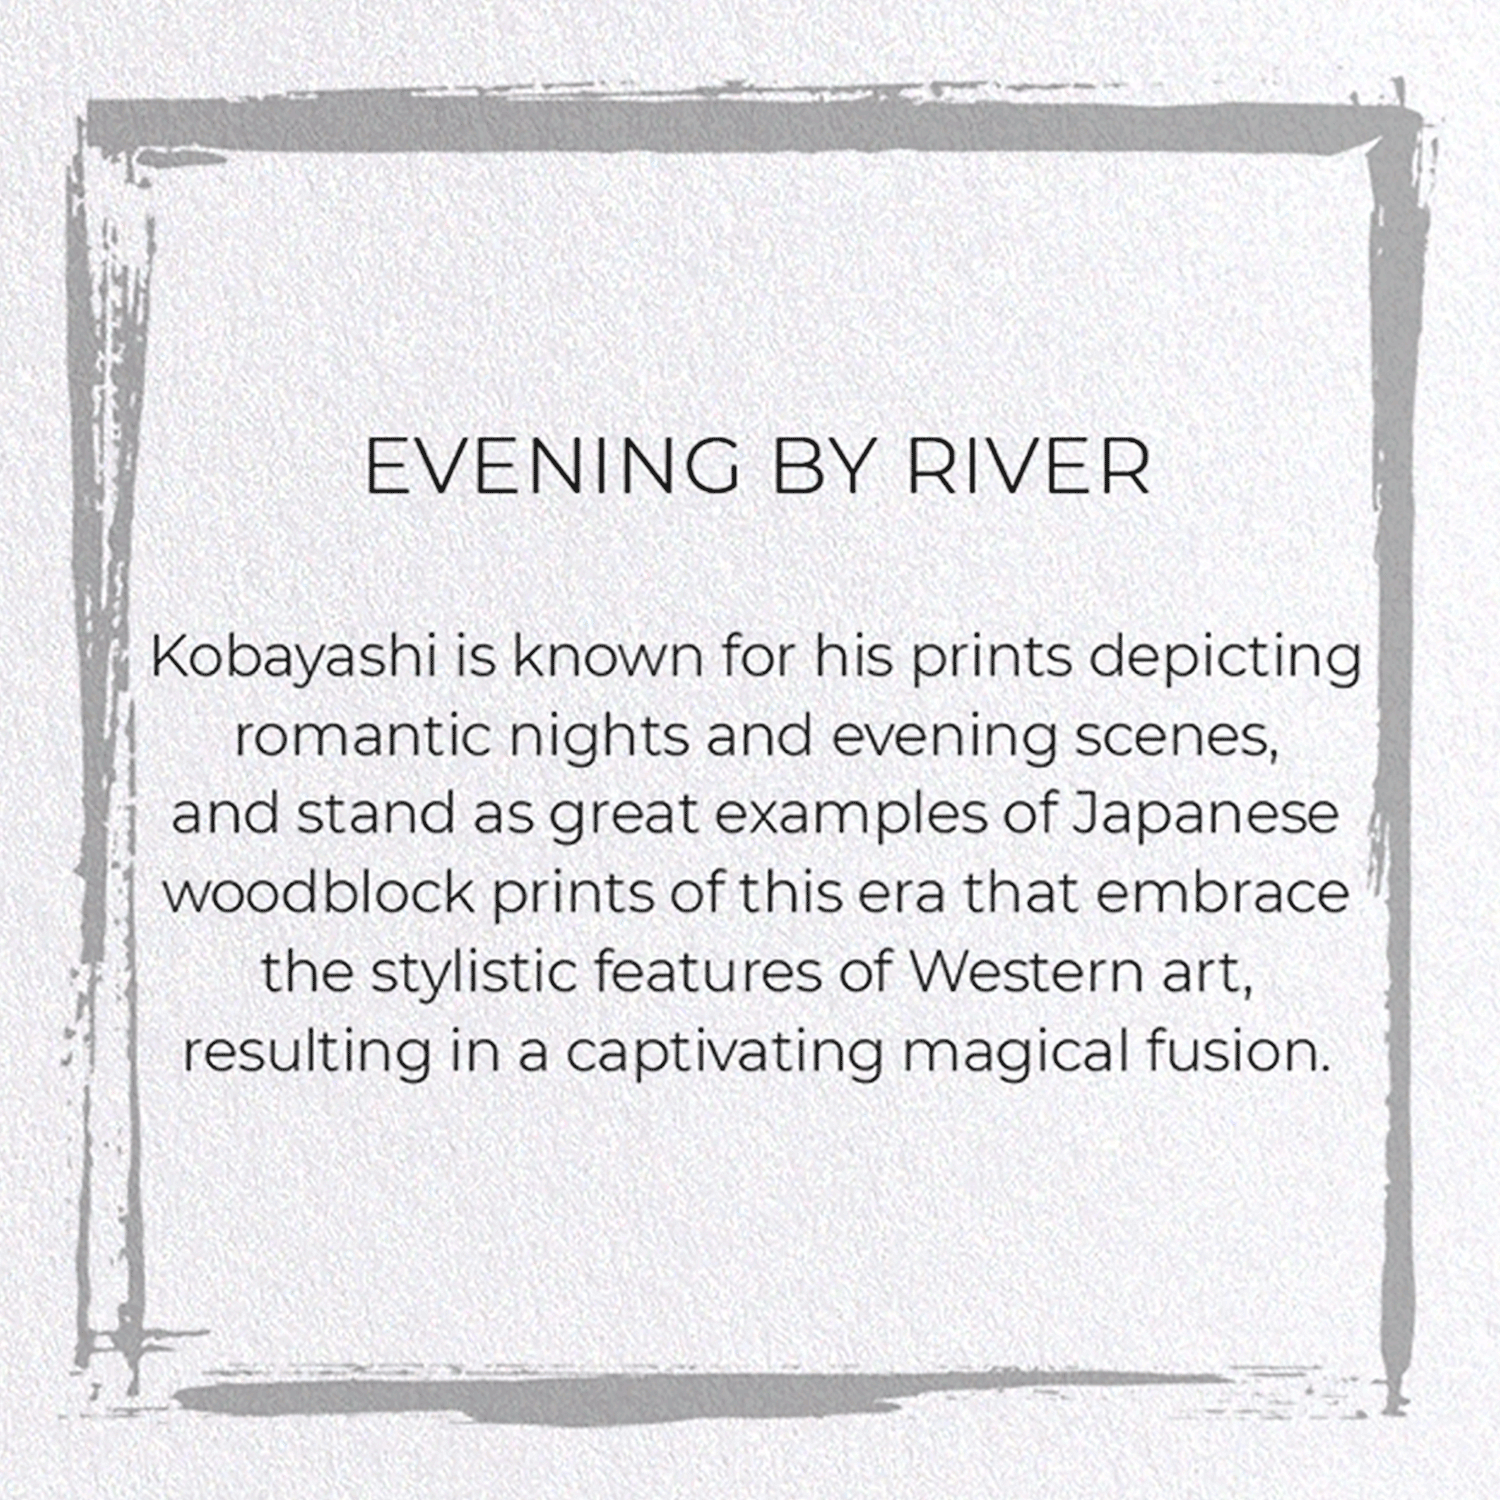 EVENING BY RIVER: 8xCards